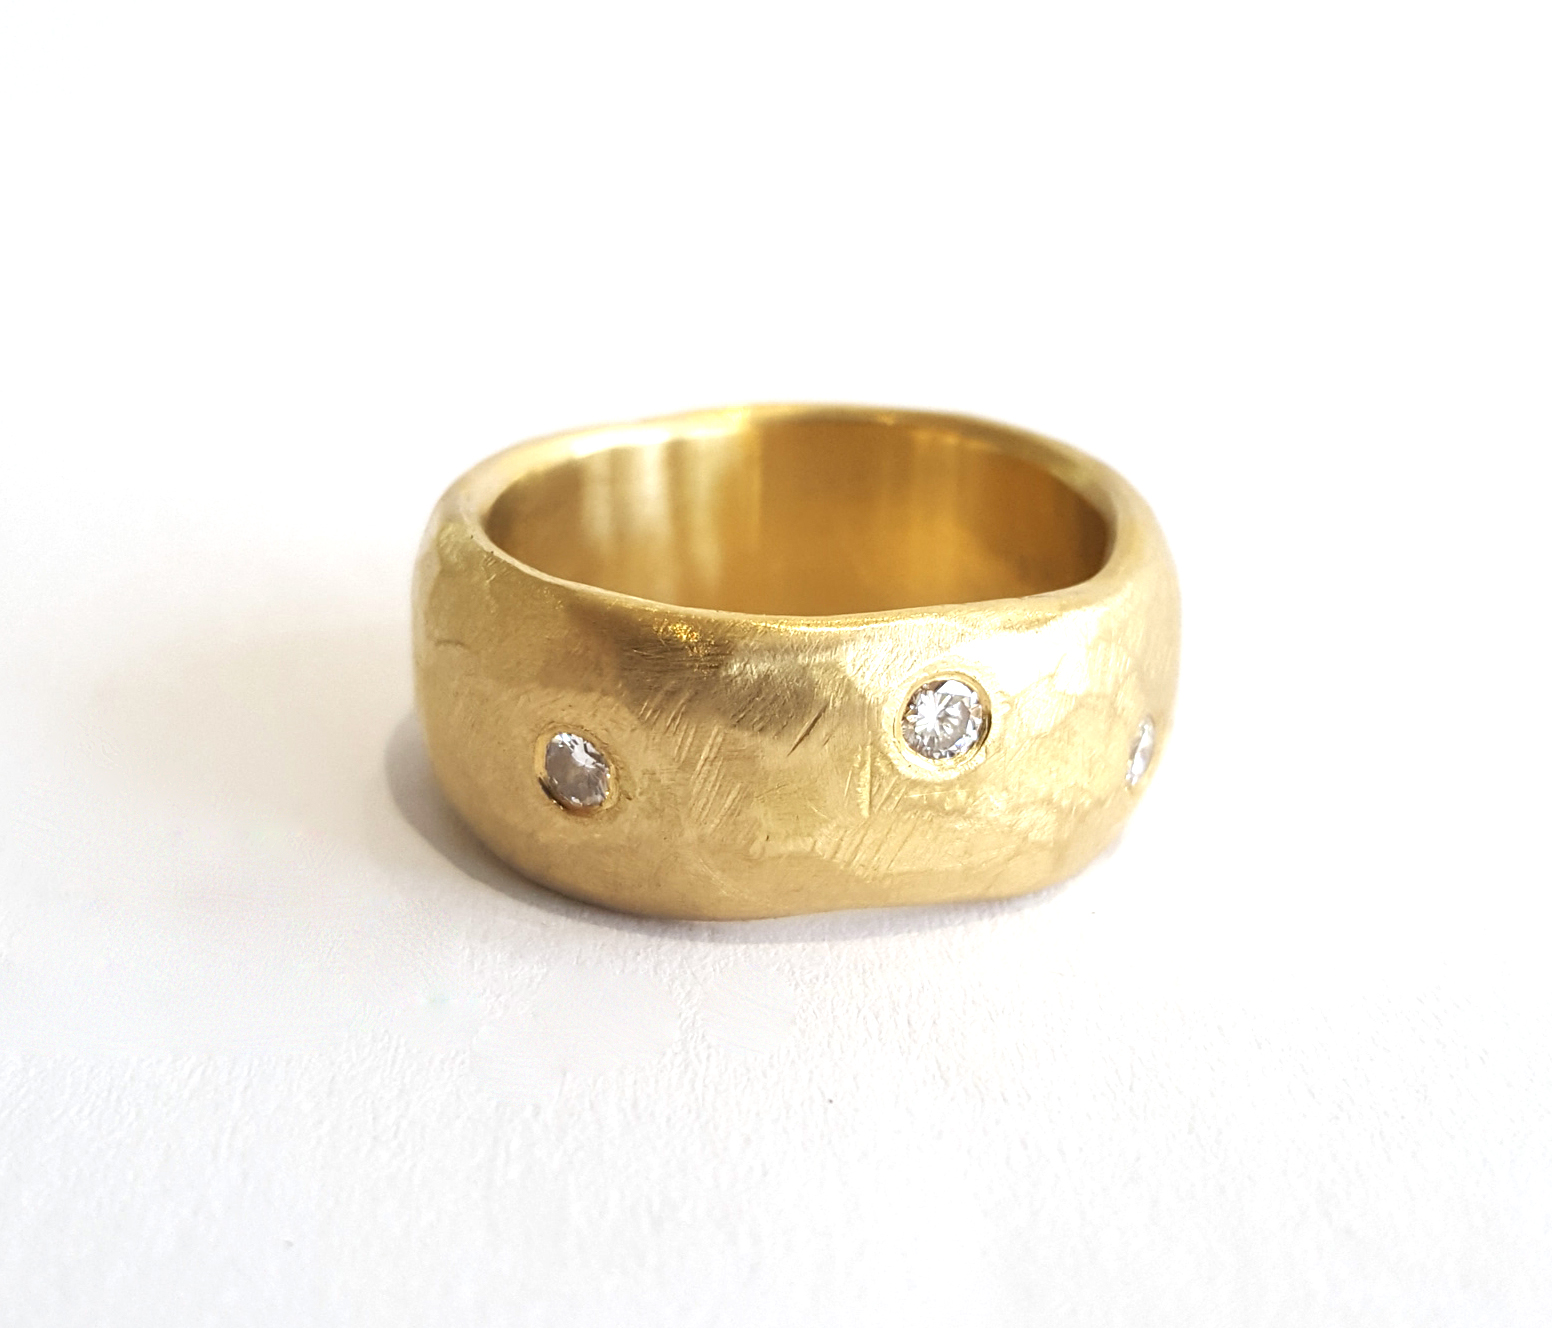 Jewellery Commission - gold and diamond ring commission remakery